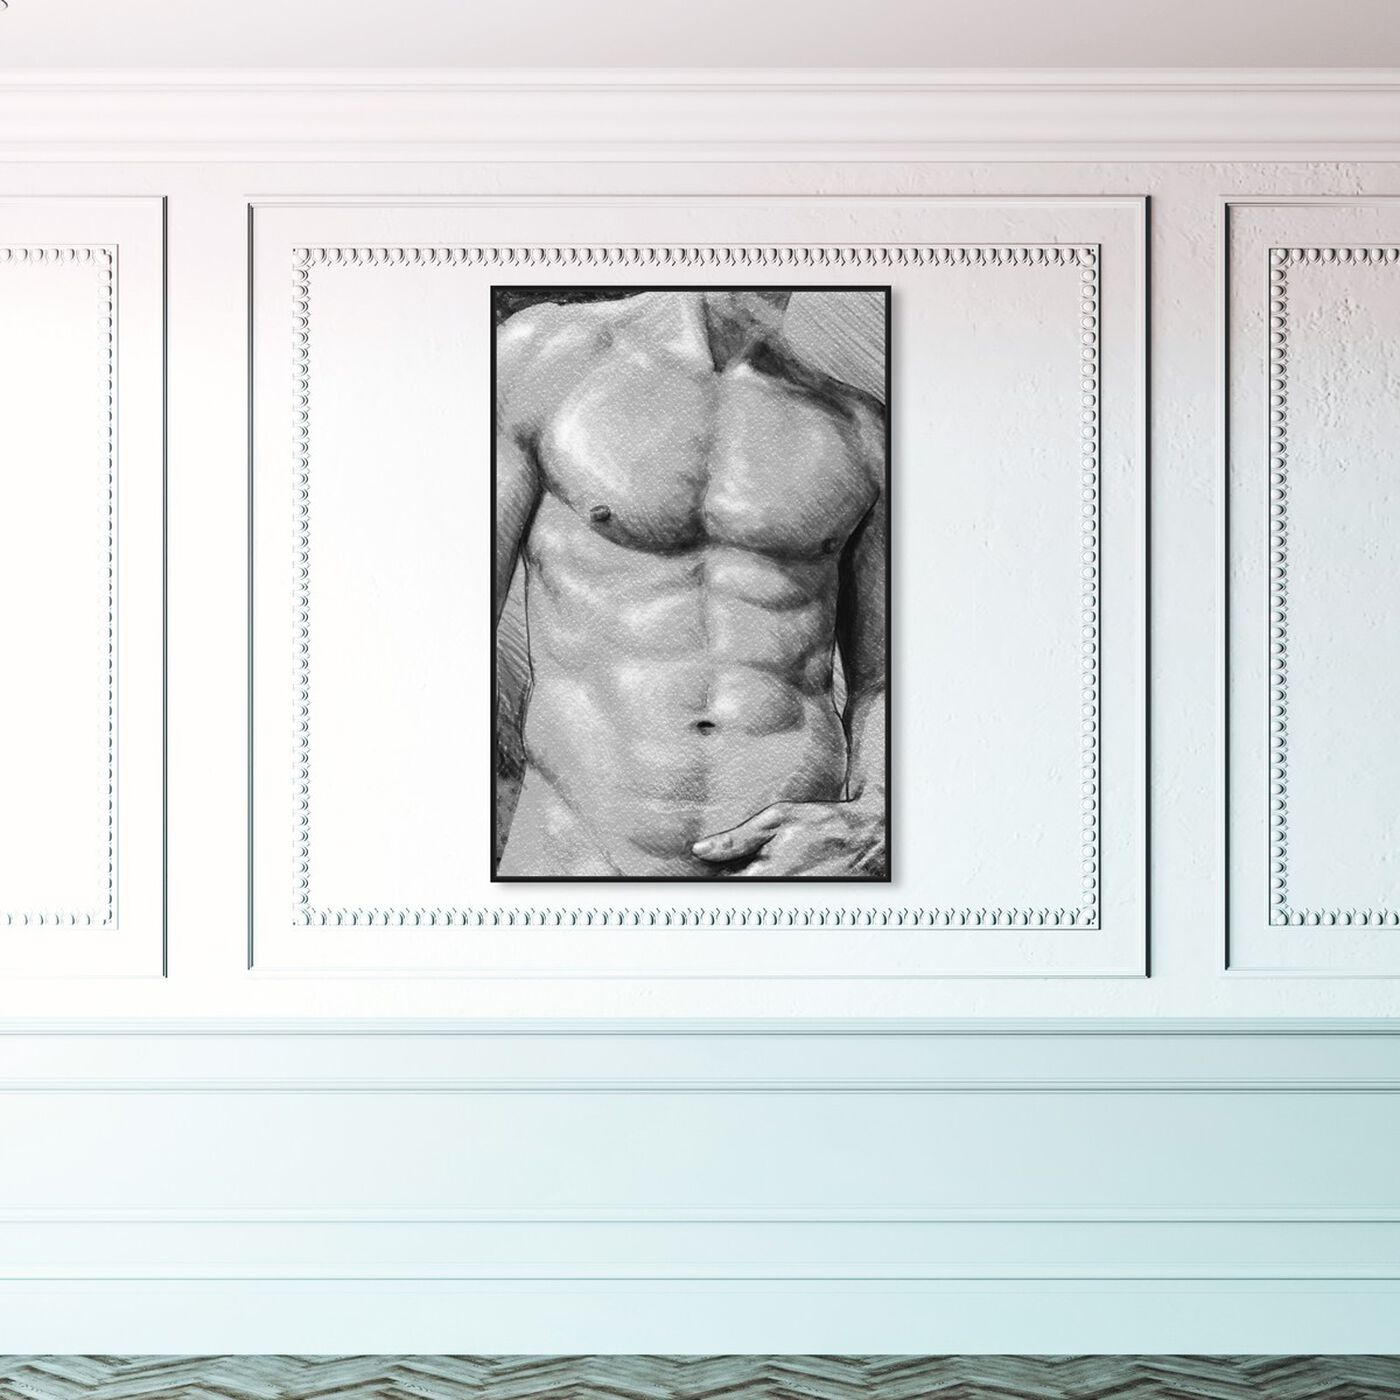 Hanging view of Male Torso in Gray featuring people and portraits and nudes art.